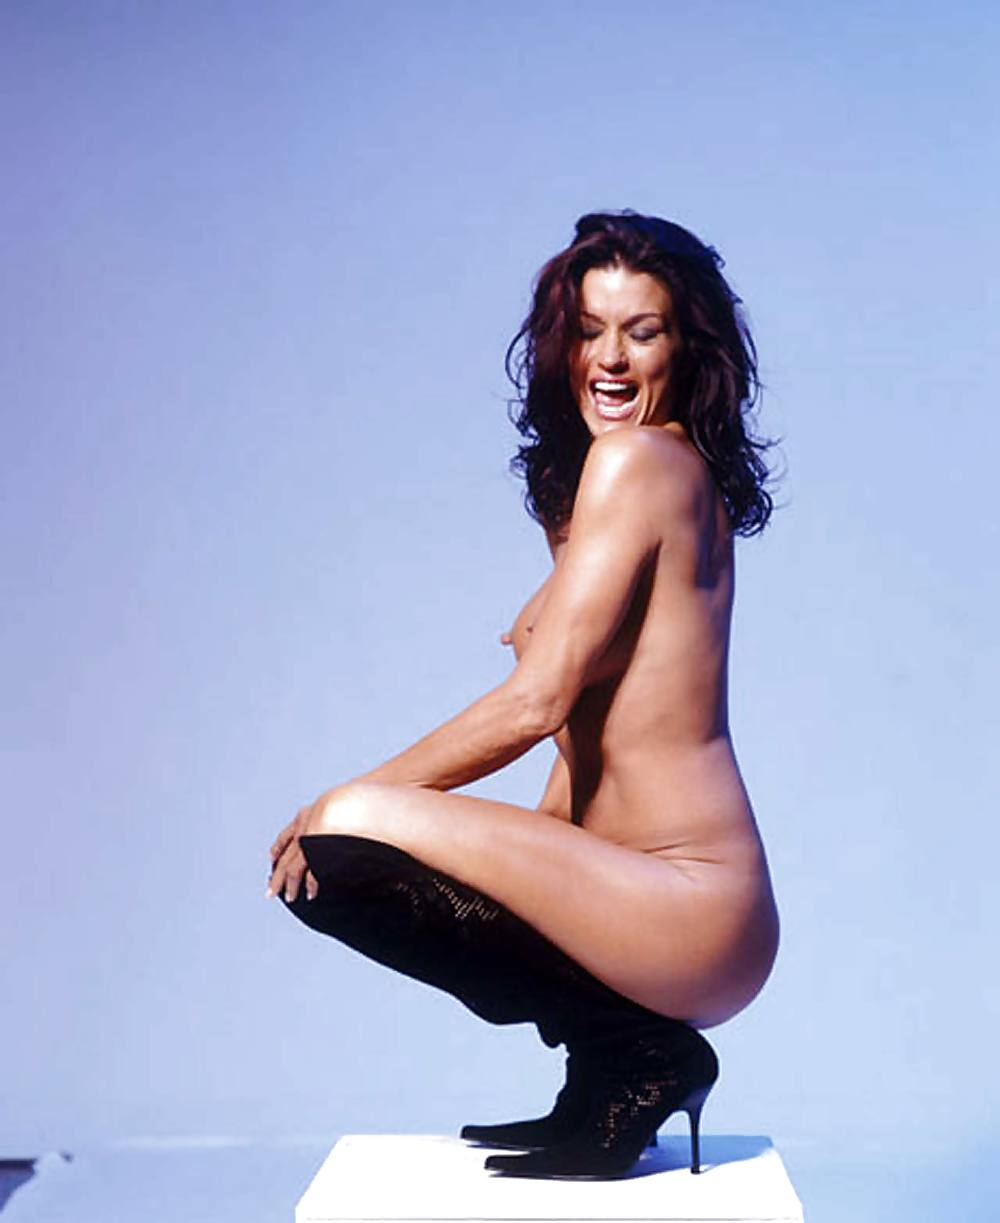 I love my body, declares model janice dickinson as she goes naked